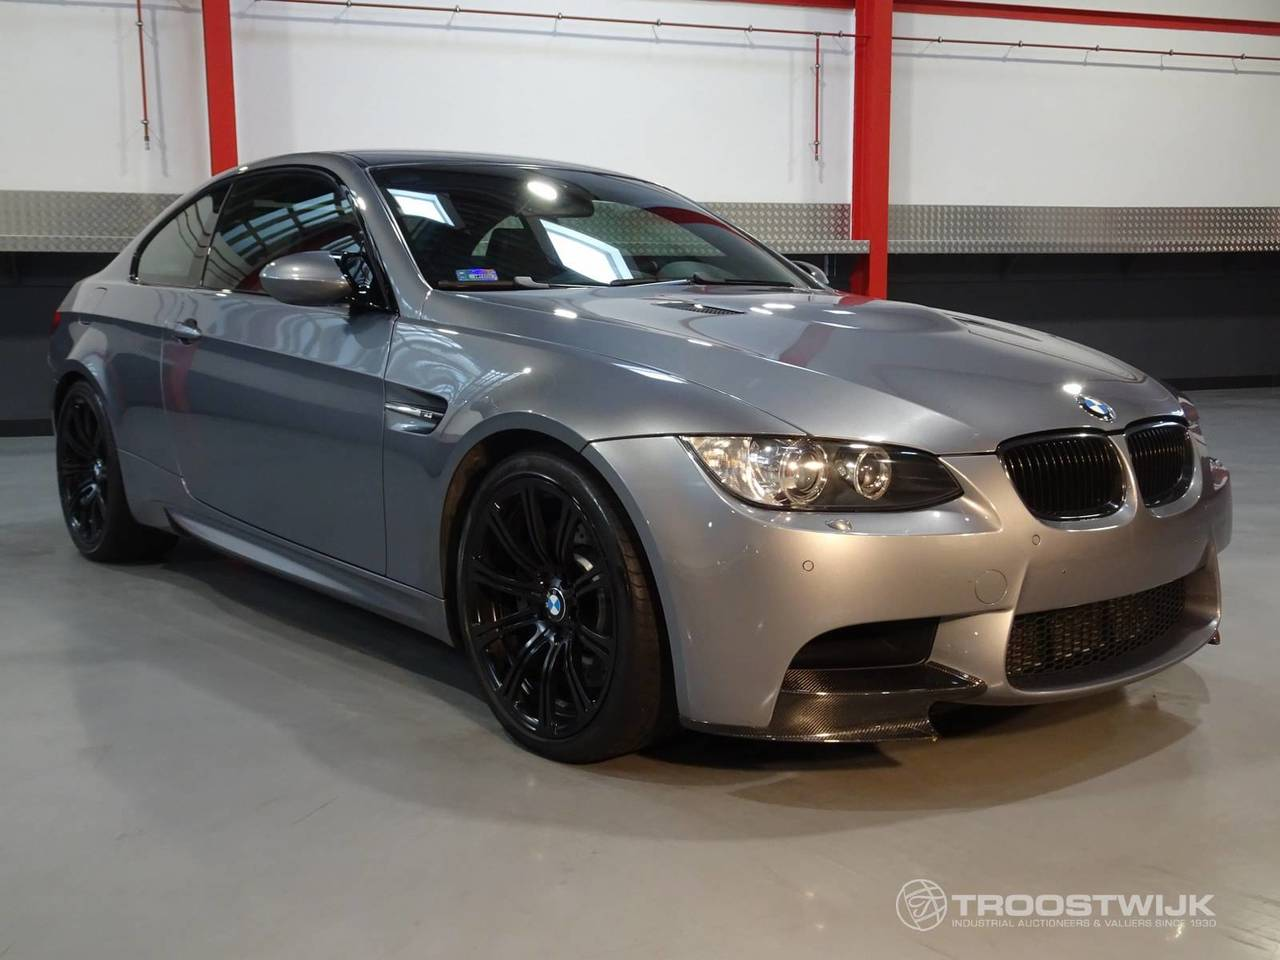 Bmw M3 E92 4 0l Coupe Car From Netherlands For Sale At Truck1 Id 3789393